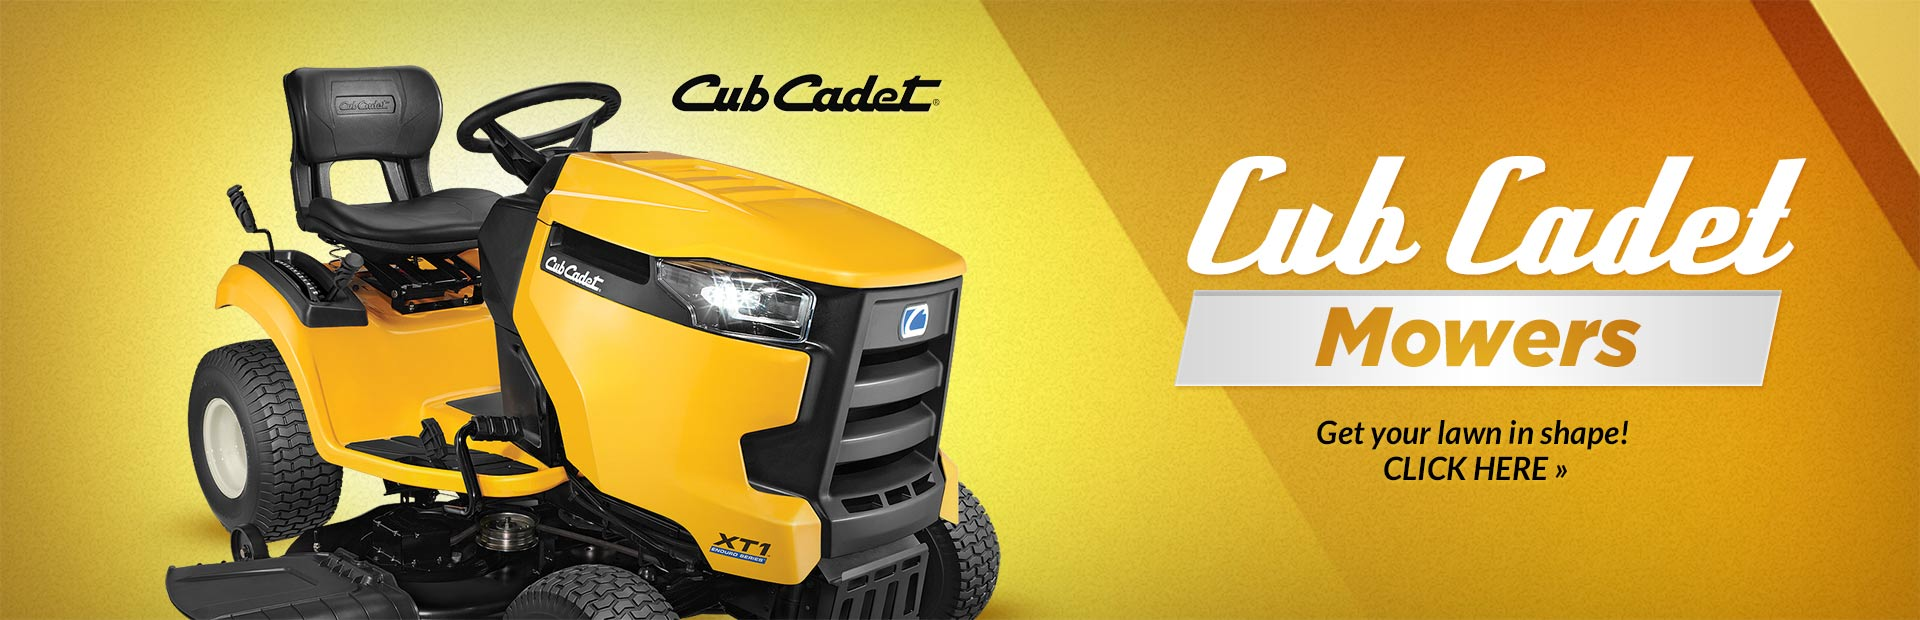 Cub Cadet Mowers: Click here to view the showcase!